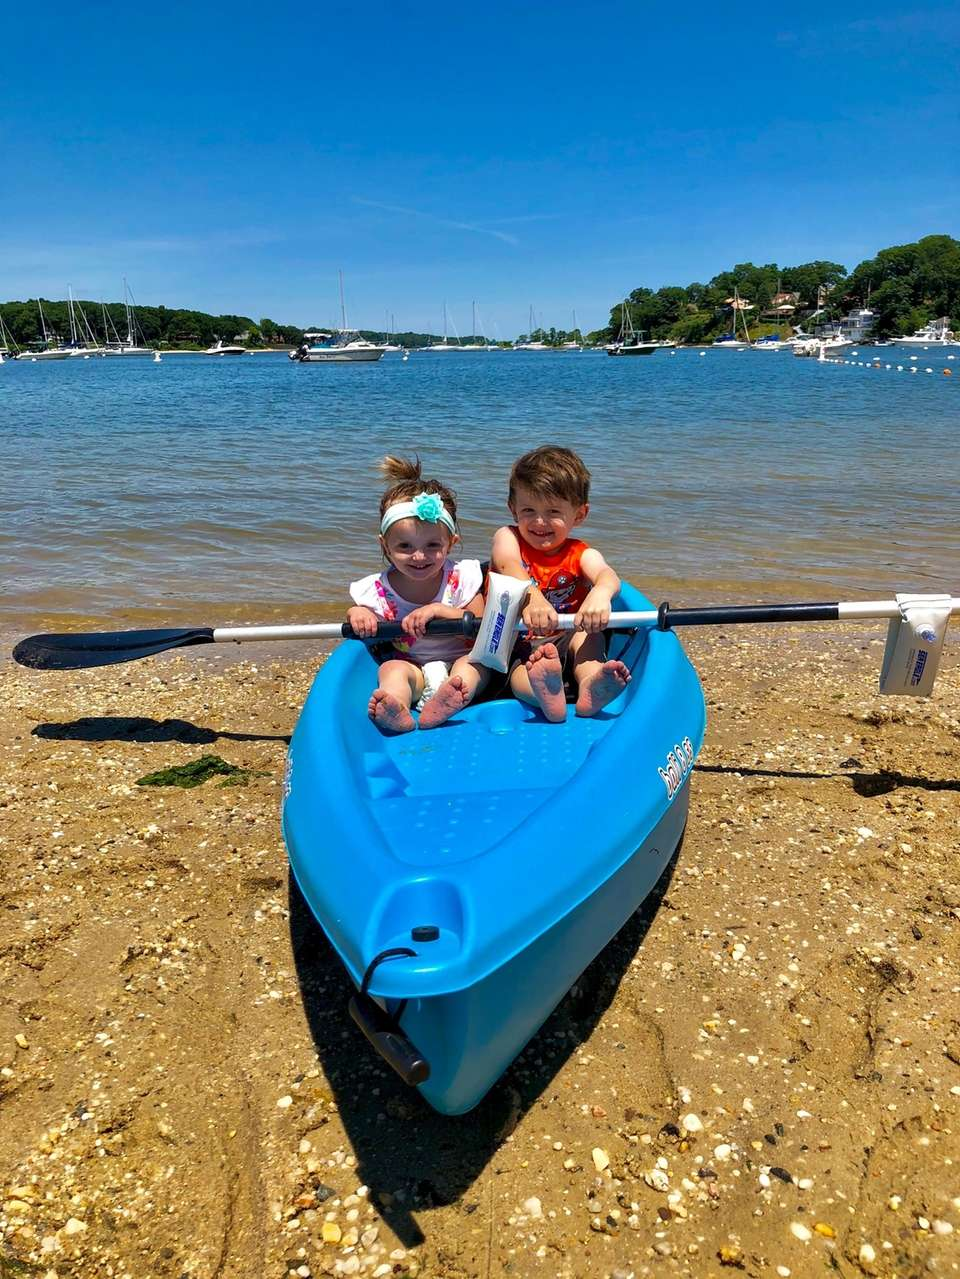 Siblings, Joseph and Sofia Woll explore a kayak